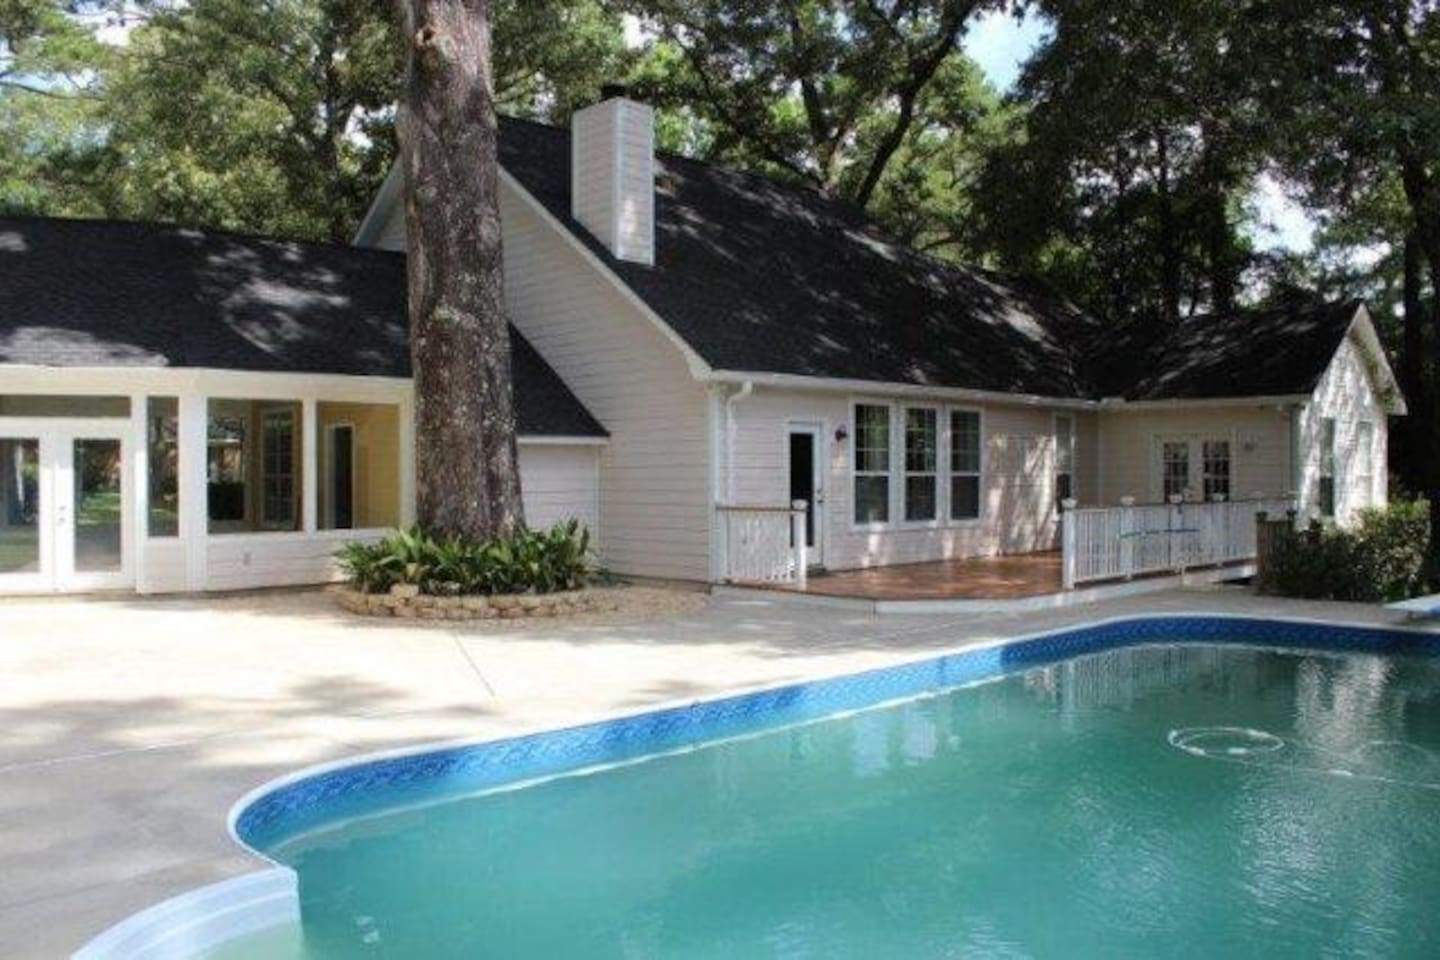 Half acre property with screened porch and salt water pool.